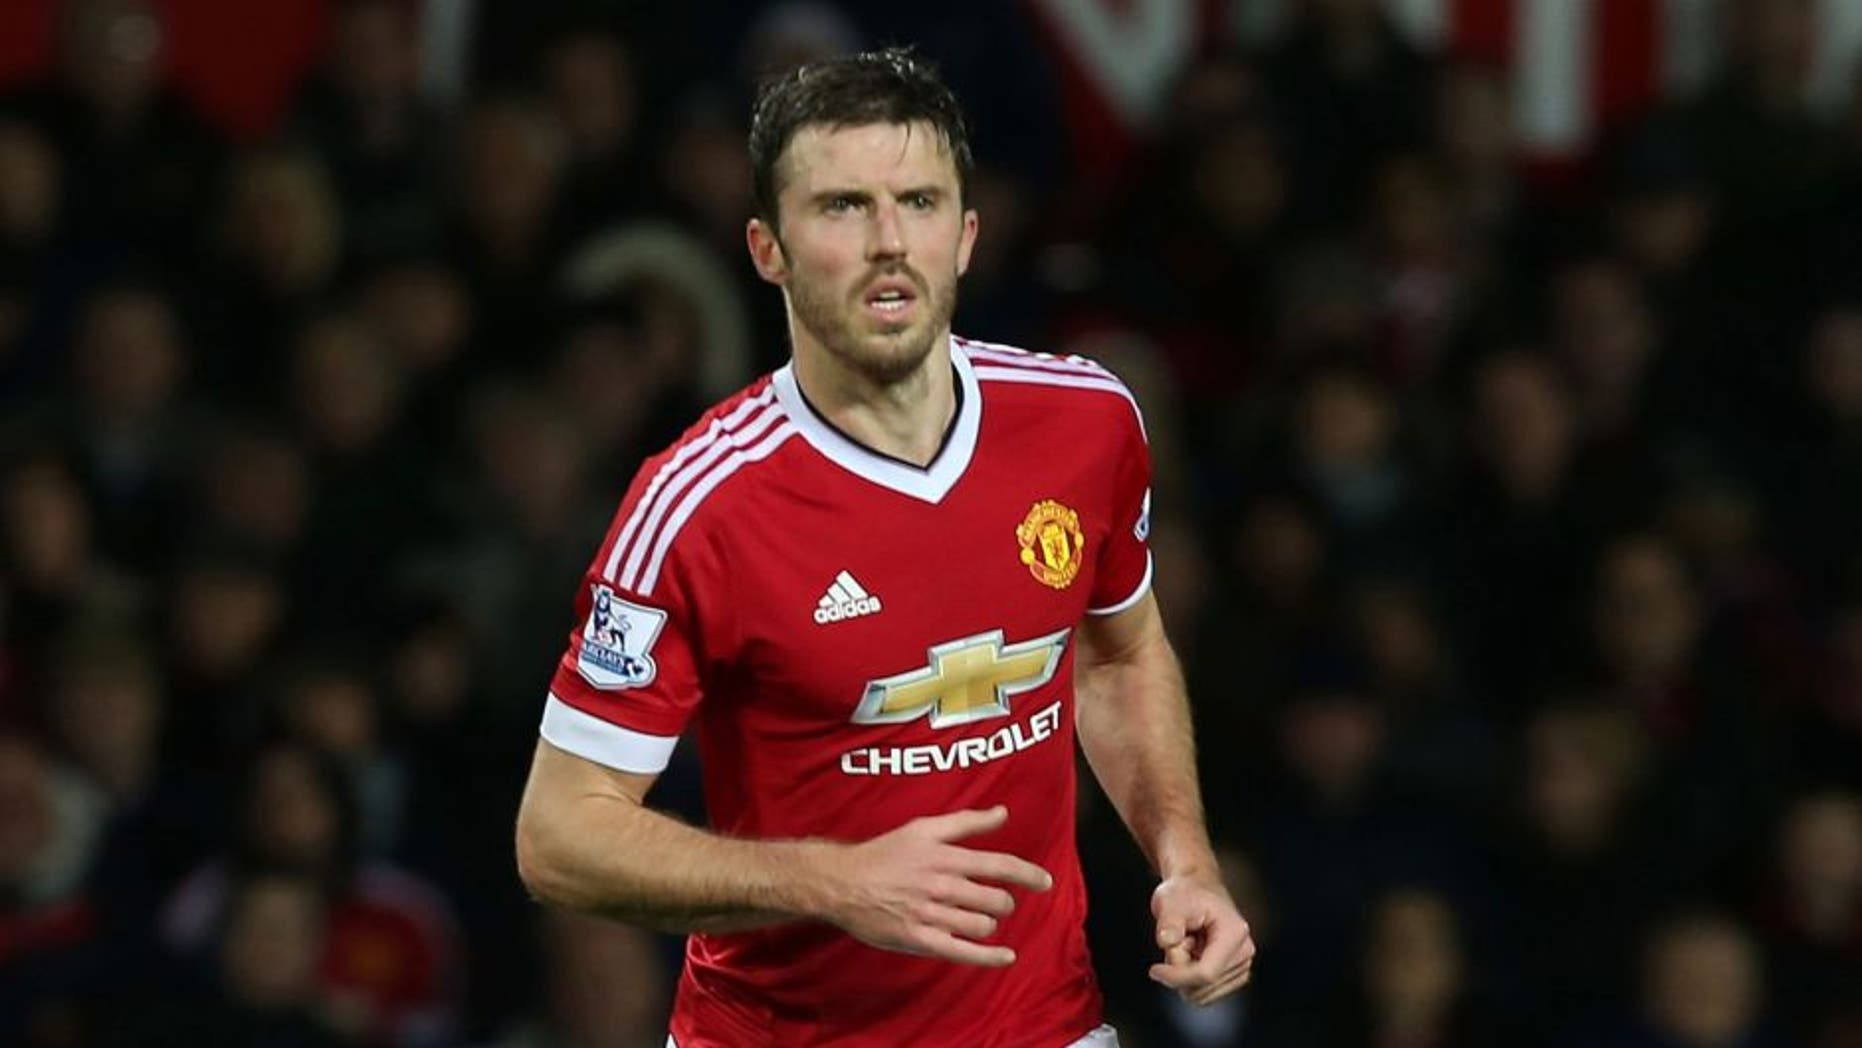 MANCHESTER, ENGLAND - DECEMBER 19: Michael Carrick of Manchester United in action during the Barclays Premier League match between Manchester United and Norwich City at Old Trafford on December 19, 2015 in Manchester, England. (Photo by Matthew Peters/Man Utd via Getty Images)